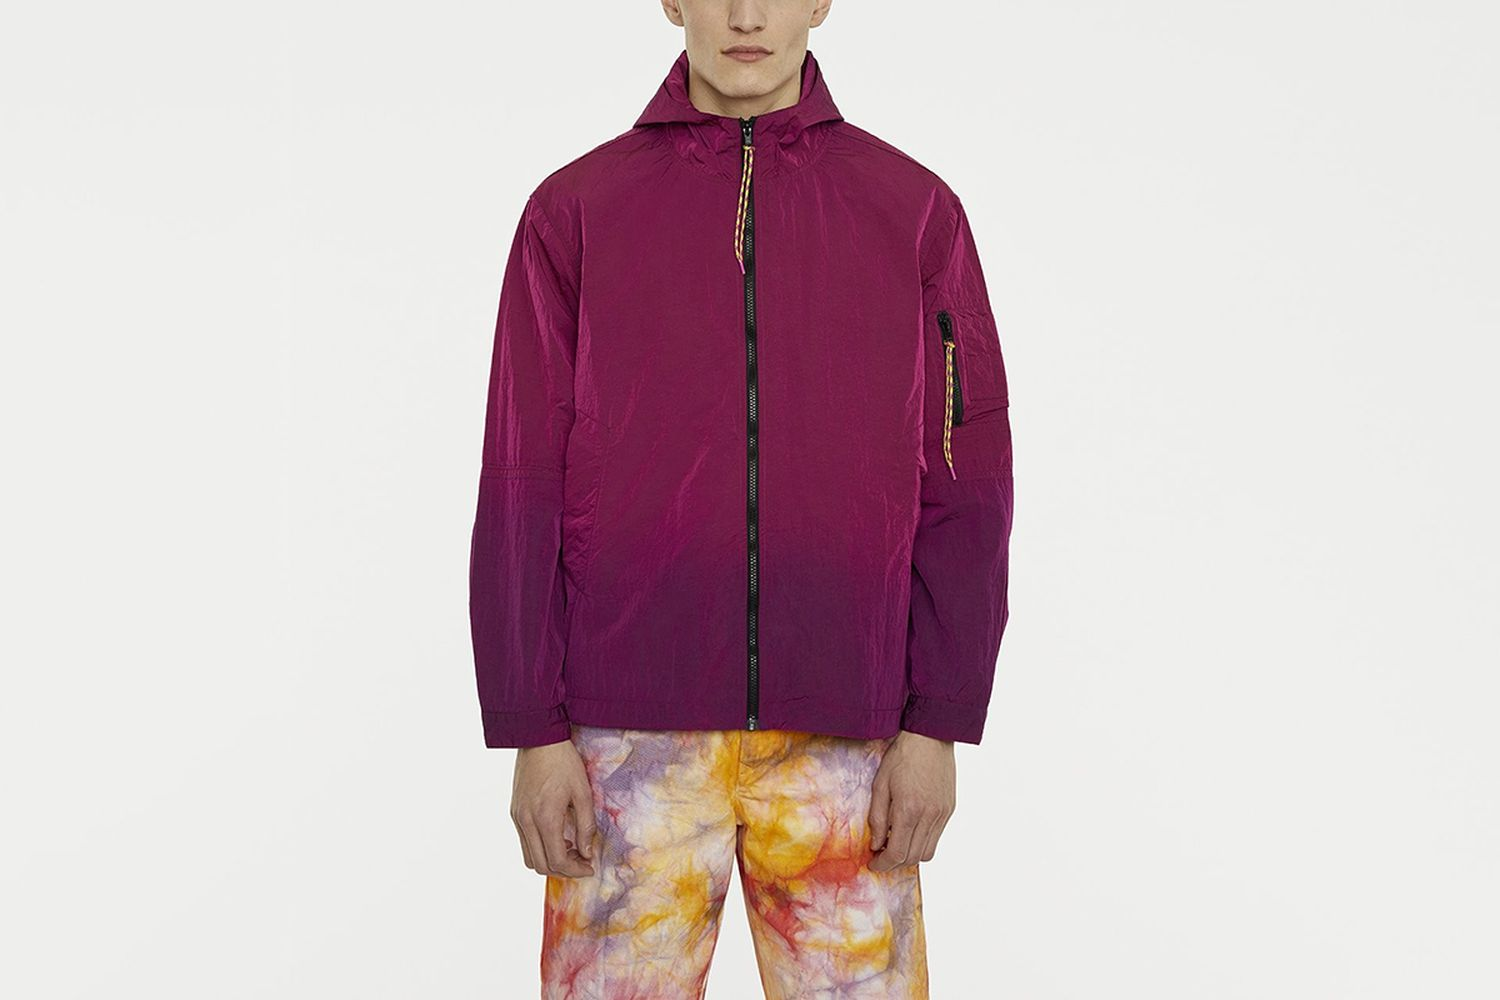 Ombre Dyed Tech Jacket